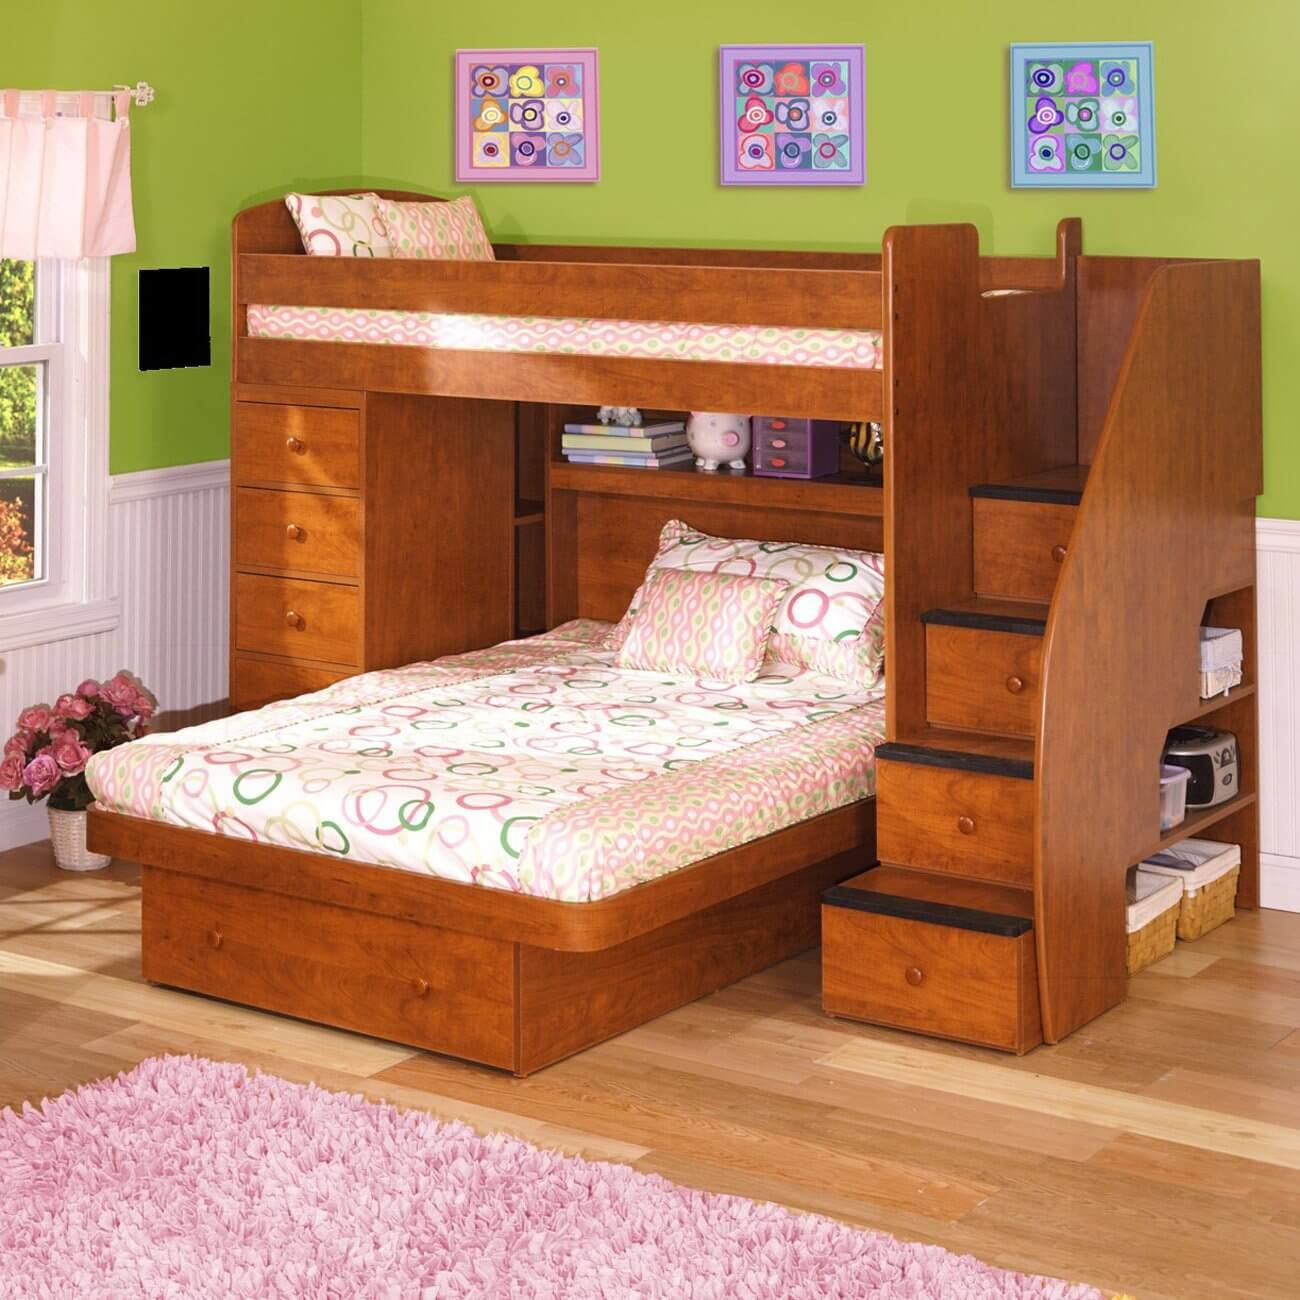 30 Bunk Bed Full Bottom Twin top Bedroom Interior Designing Check